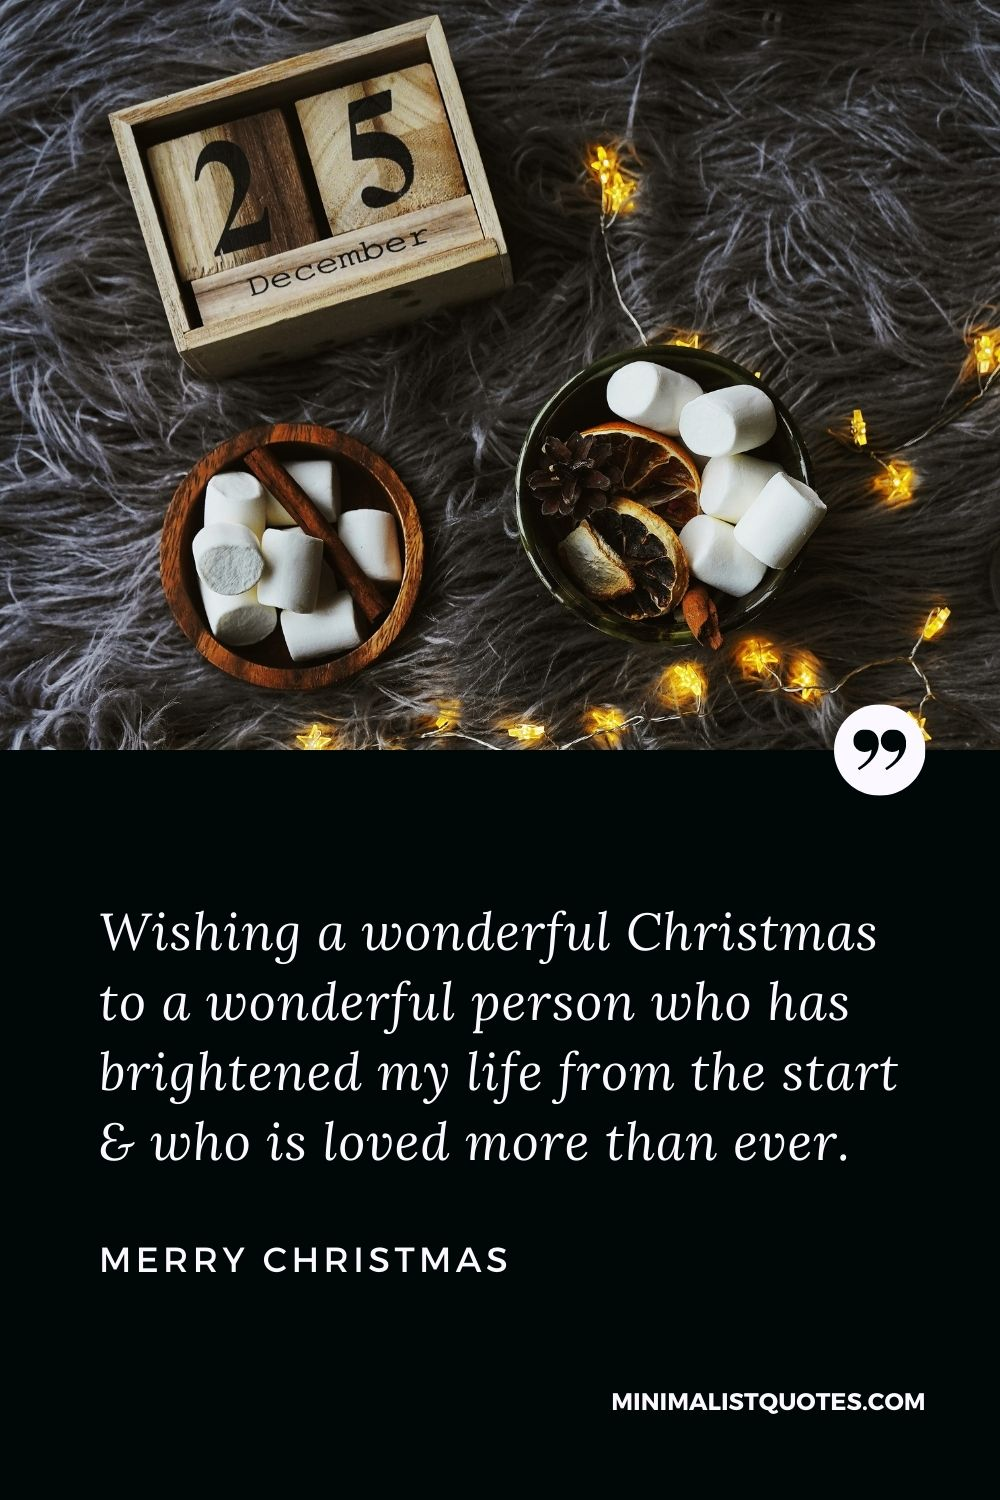 Merry Christmas Wish - Wishing a wonderful Christmas to a wonderful person who has brightened my life from the start &who is loved more than ever.